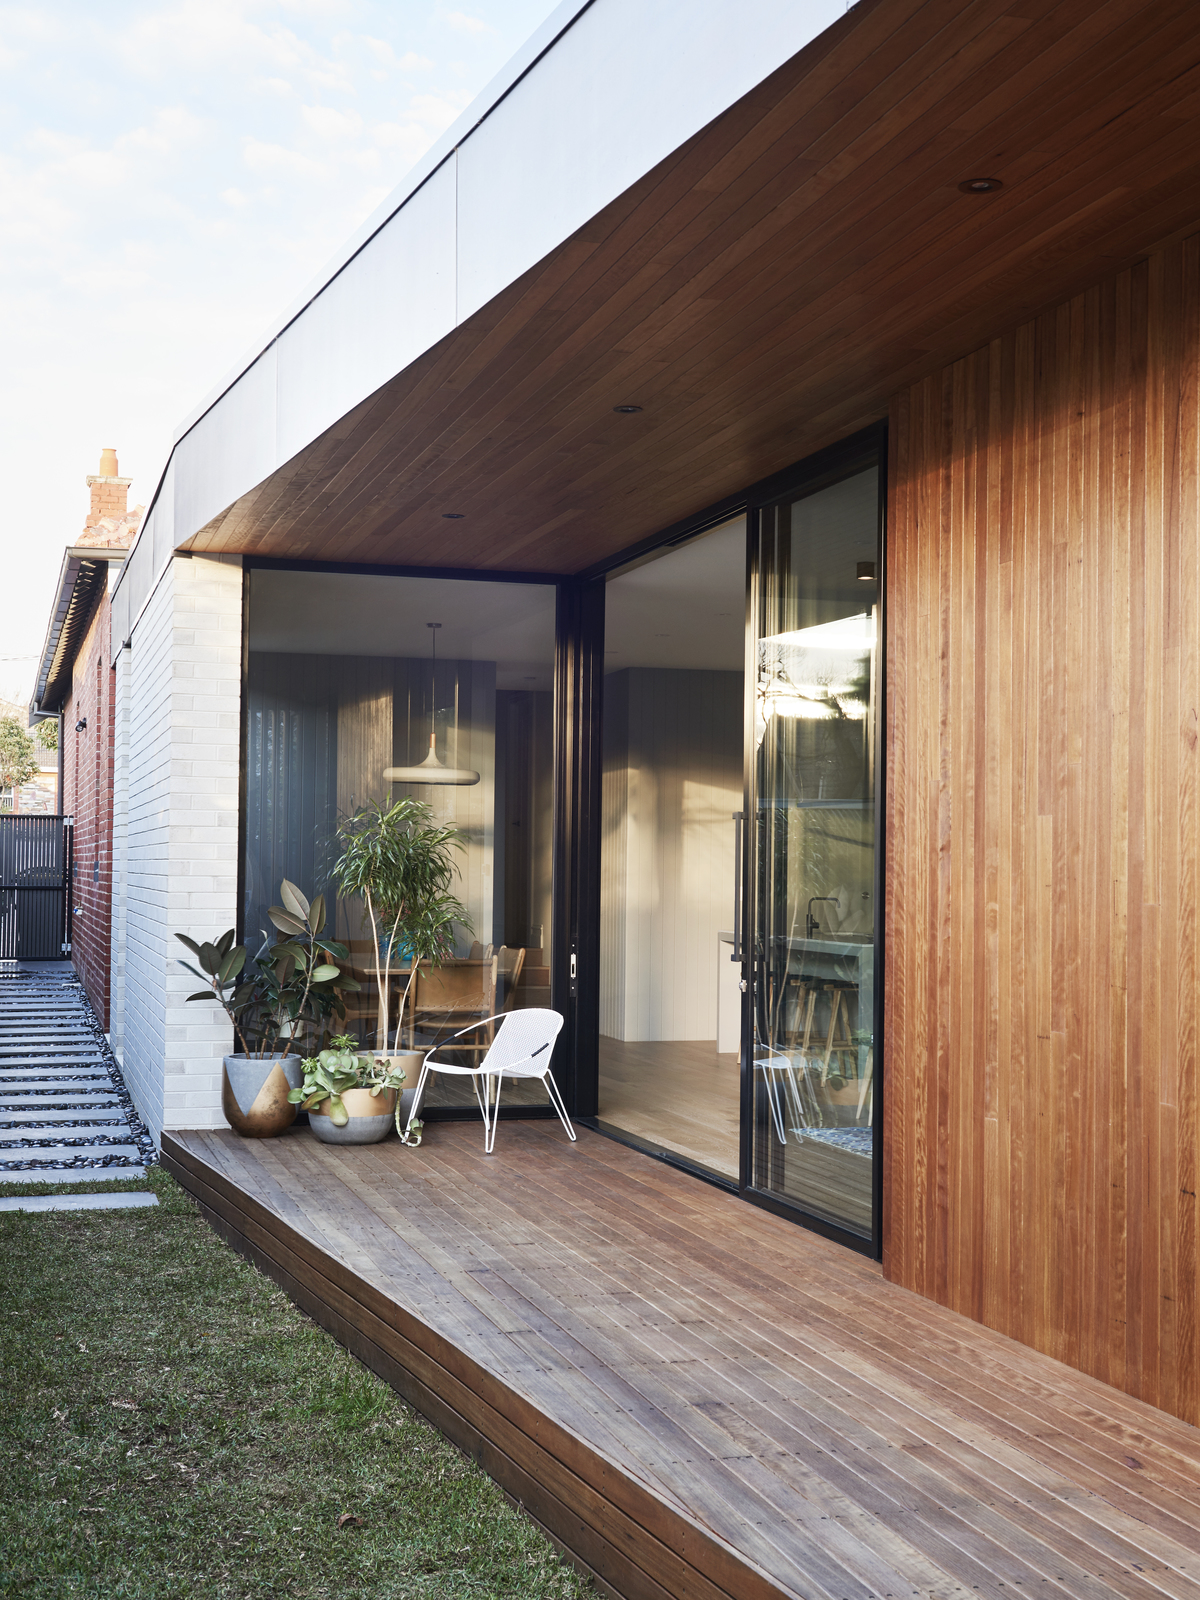 Gallery Of Elsternwick 3 By Pleysier Perkins Architects In Elsternwick, Vic, Australia (16)